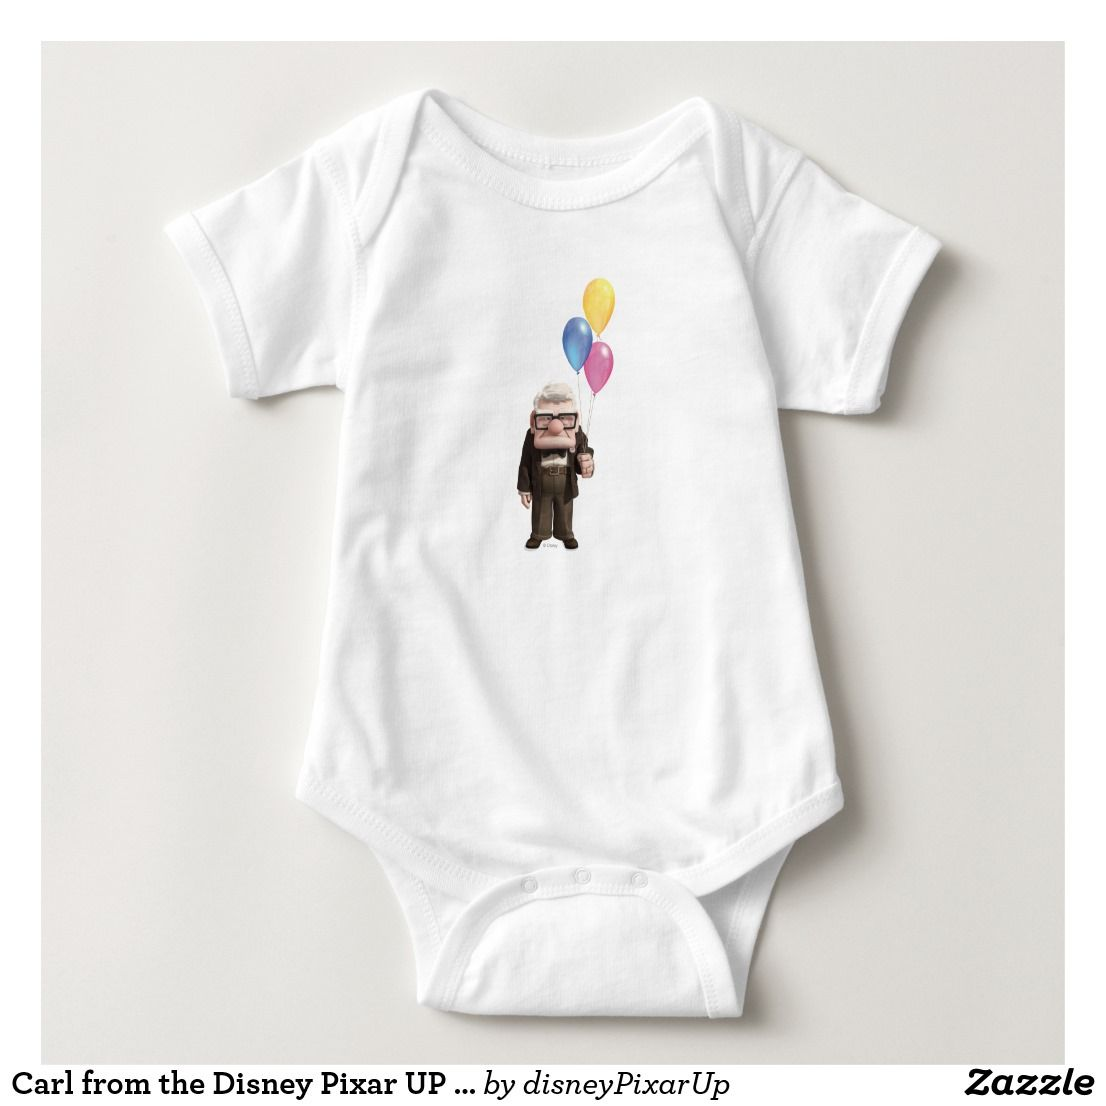 Carl from the Disney Pixar UP Movie Holding Baby Bodysuit. Great Gifts For The Perfect Baby Shower.   #Disney #BabyShowerGifts #DisneyKids #DisneyGifts #Personalize #DisneyBabyClothes #DisneyBabyShower #DisneyFan